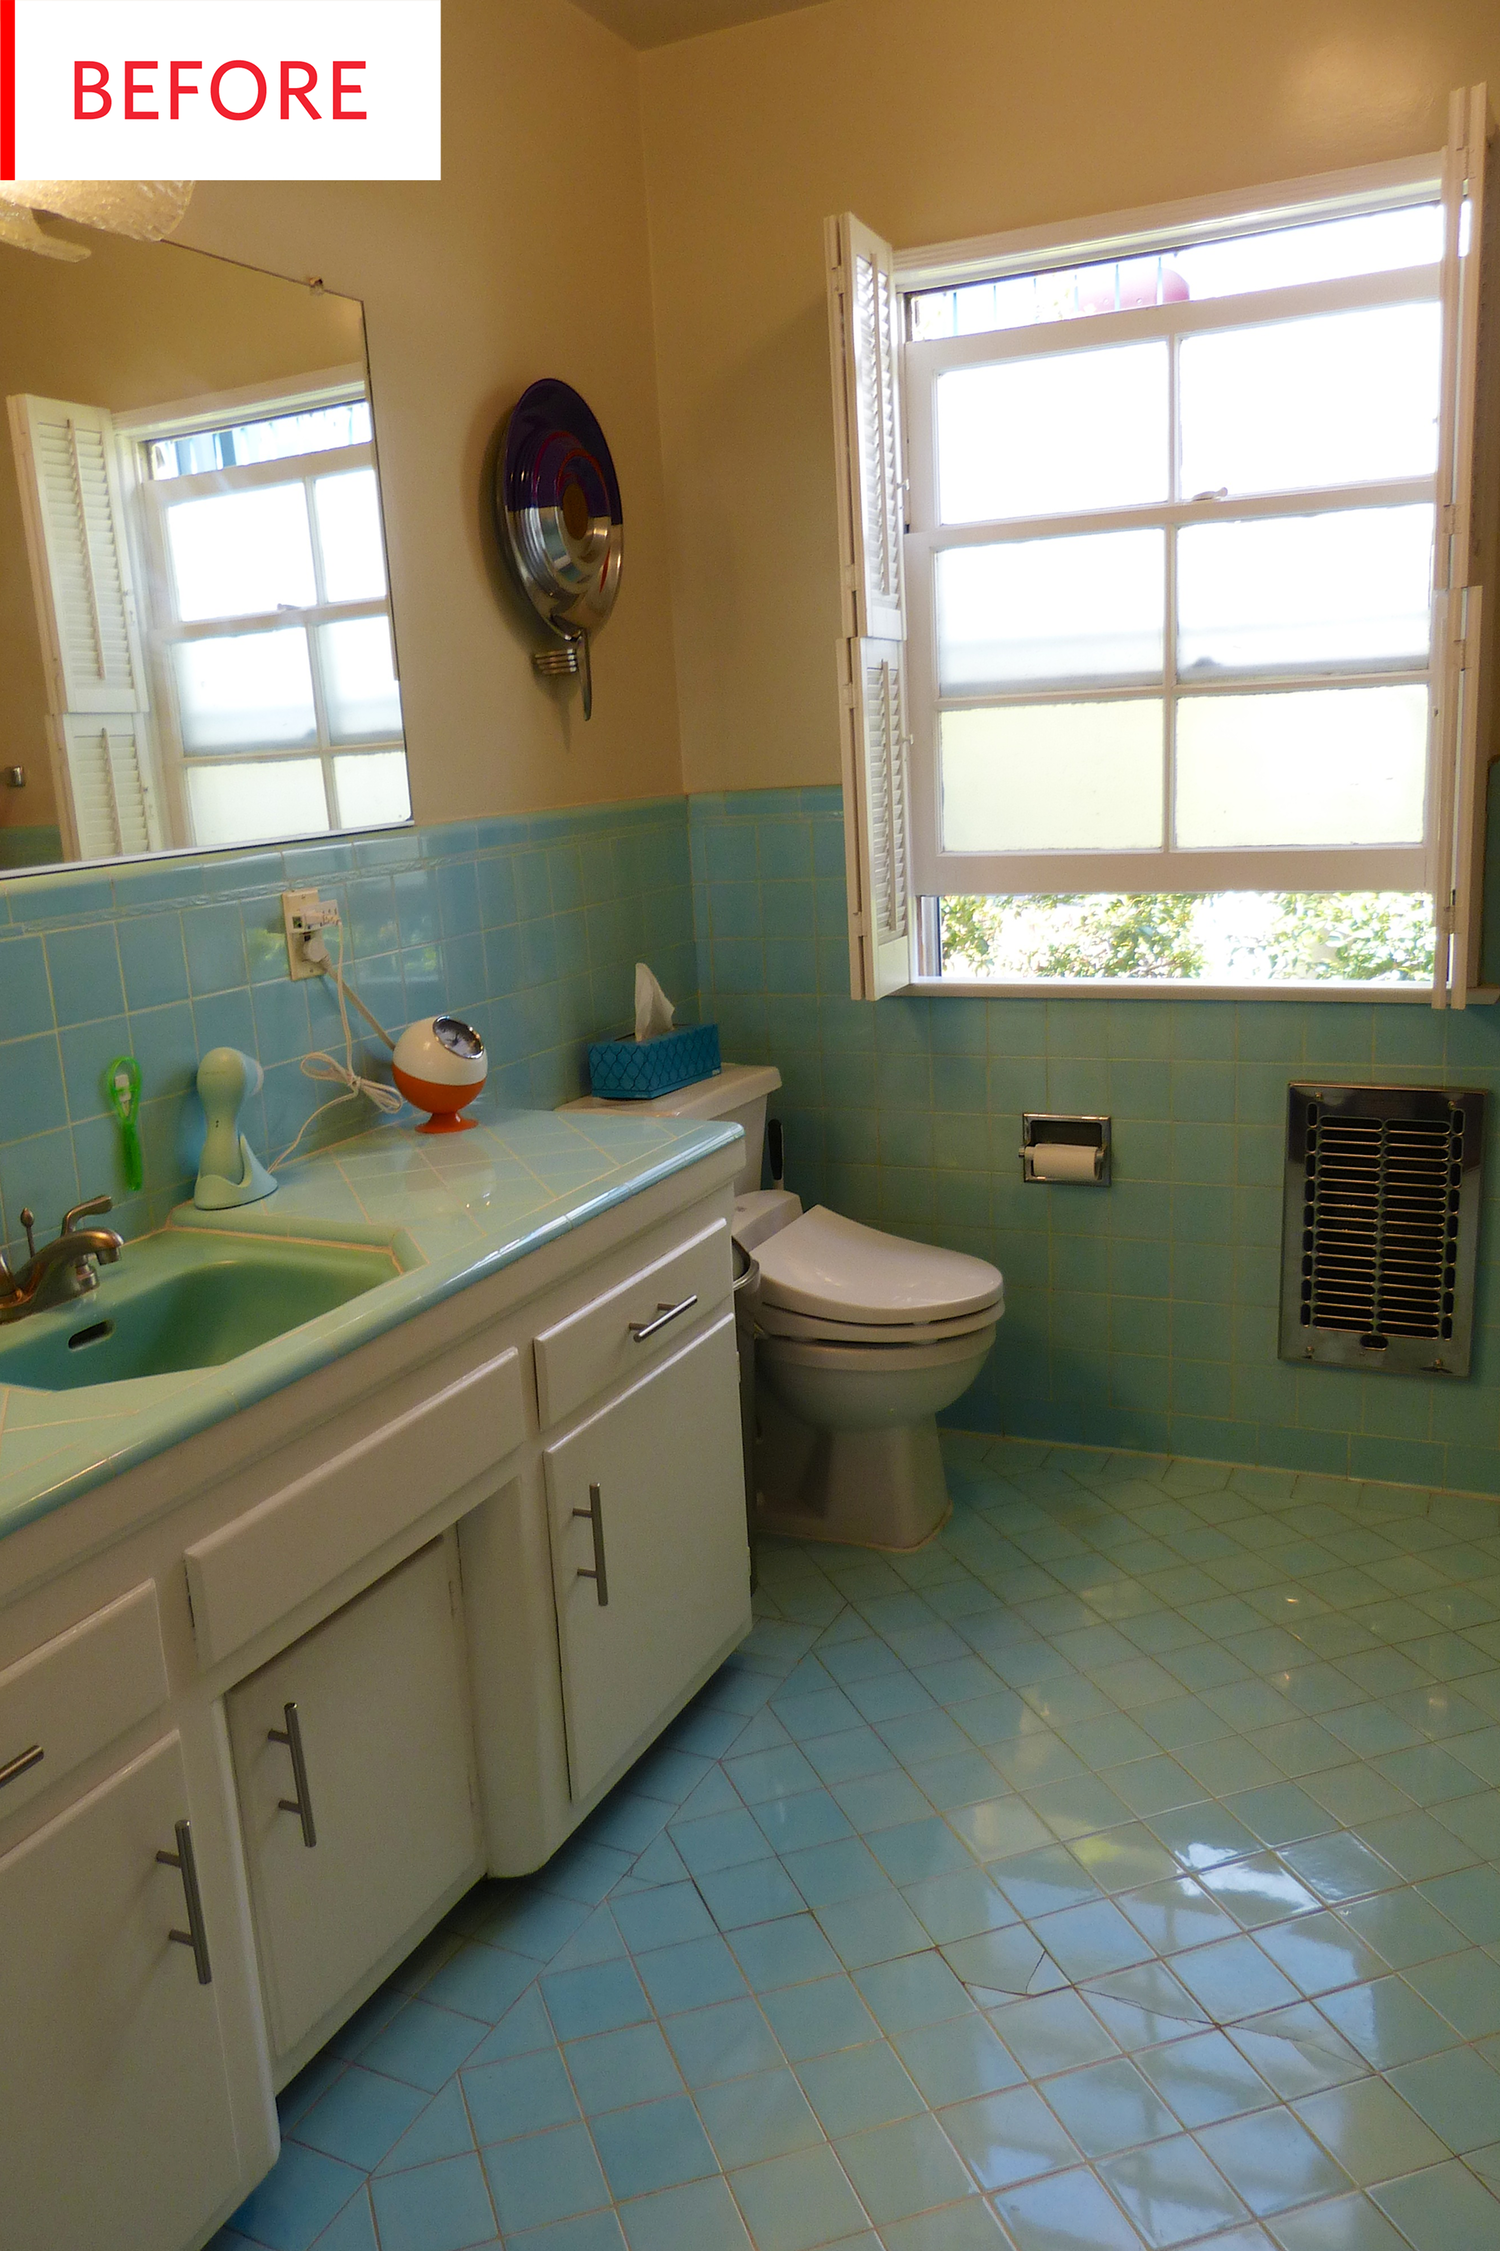 Before And After This Bathroom Keeps Its Original Beautiful Tiles Blue Bathroom Tile Yellow Bathroom Tiles Yellow Bathrooms